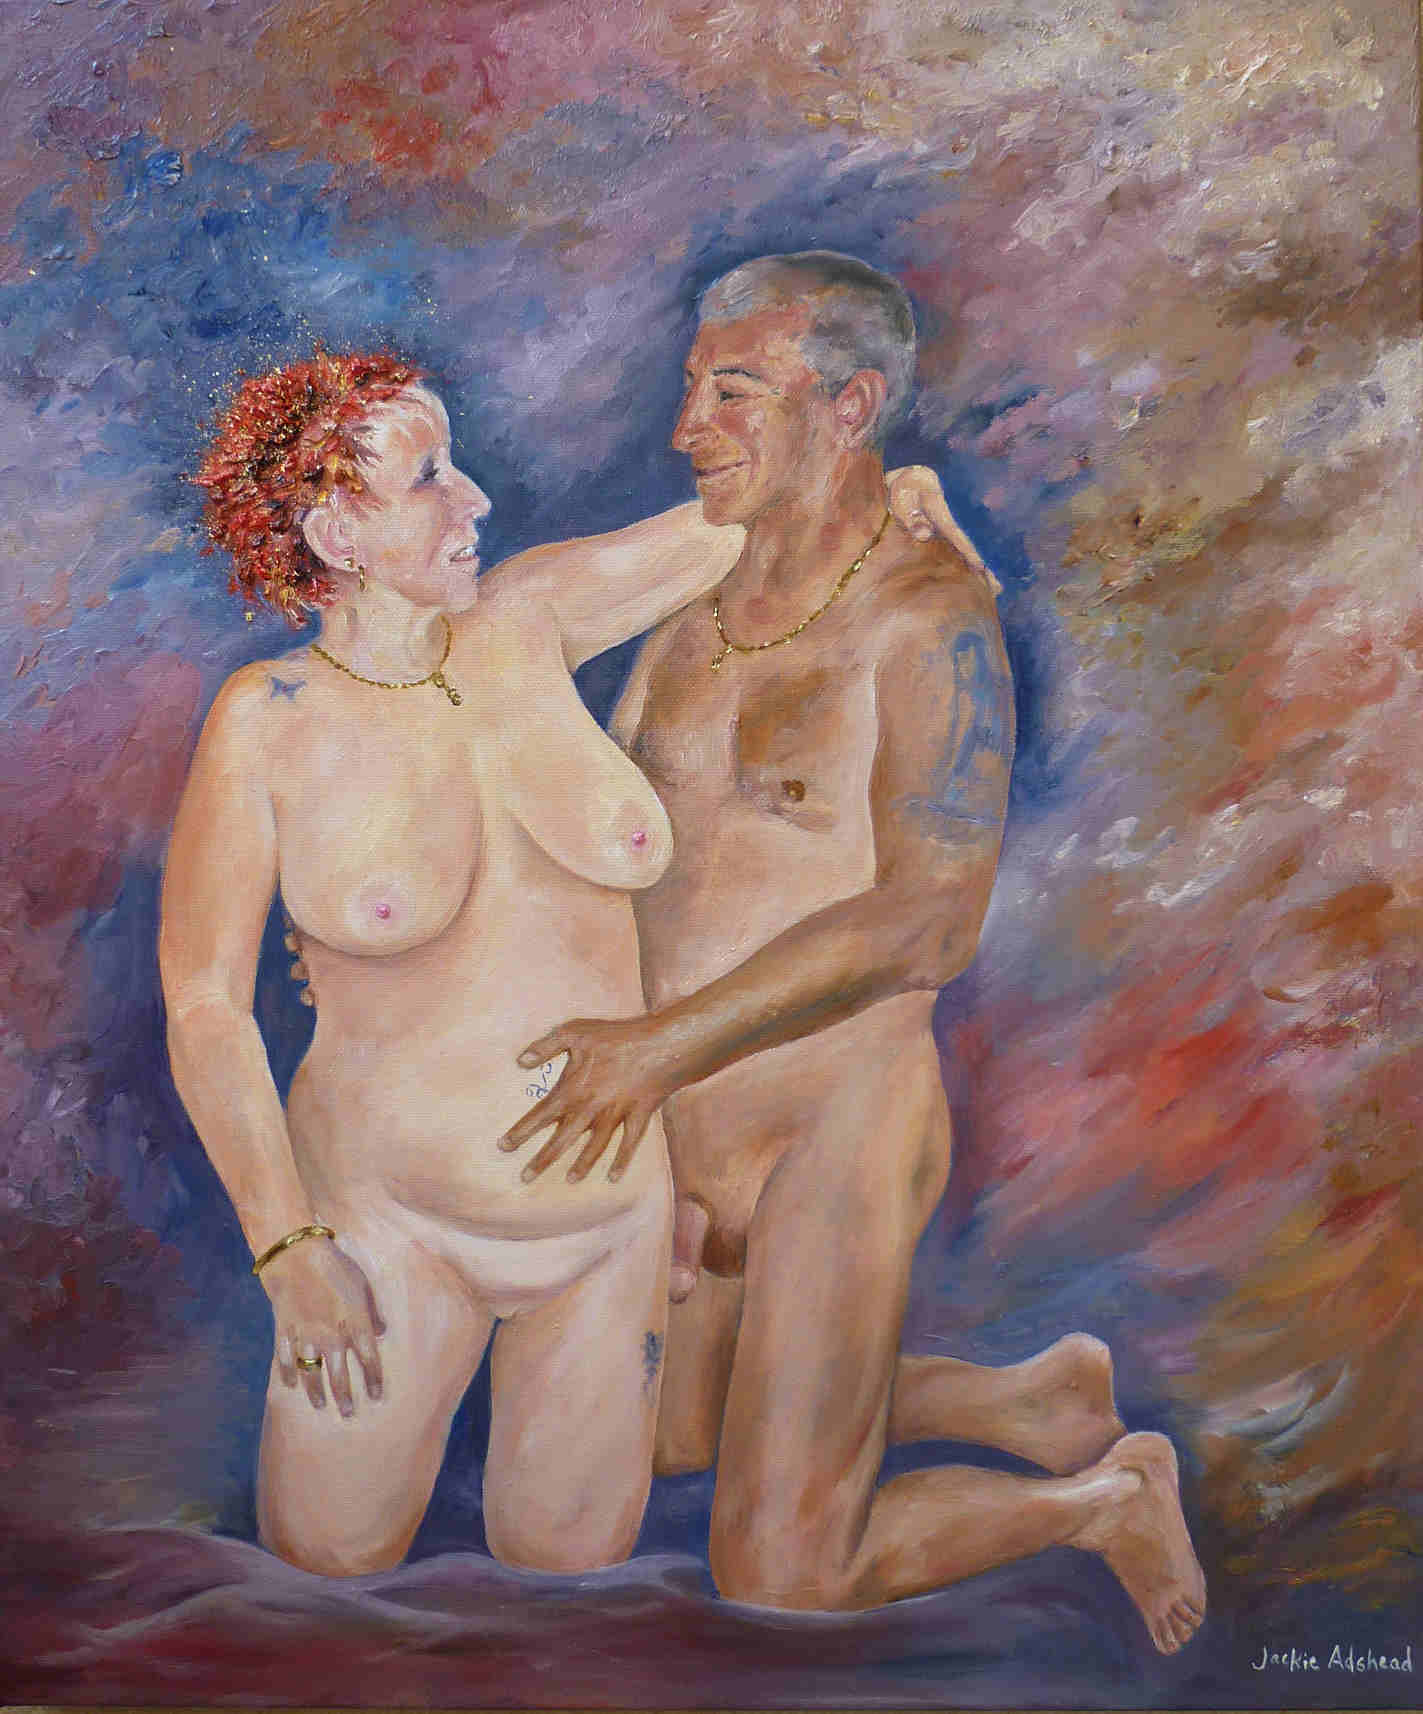 How to paint an erotic oil painting from start to finish